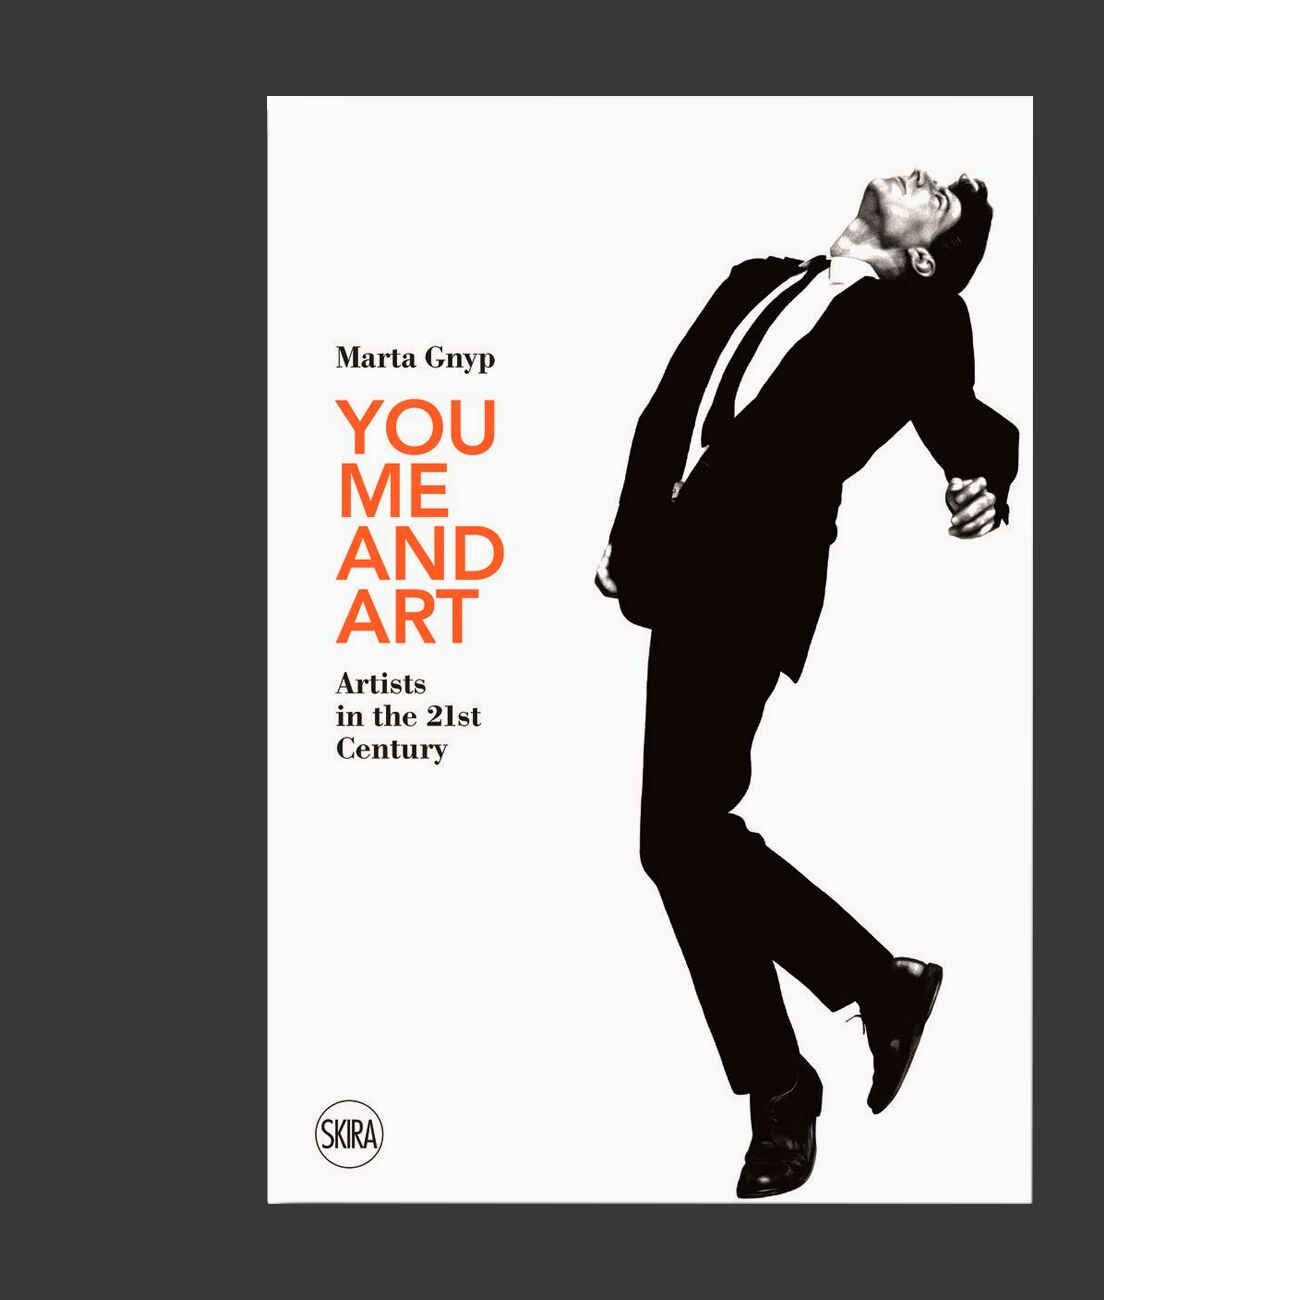 You, Me and Art: Artists in the 21st Century